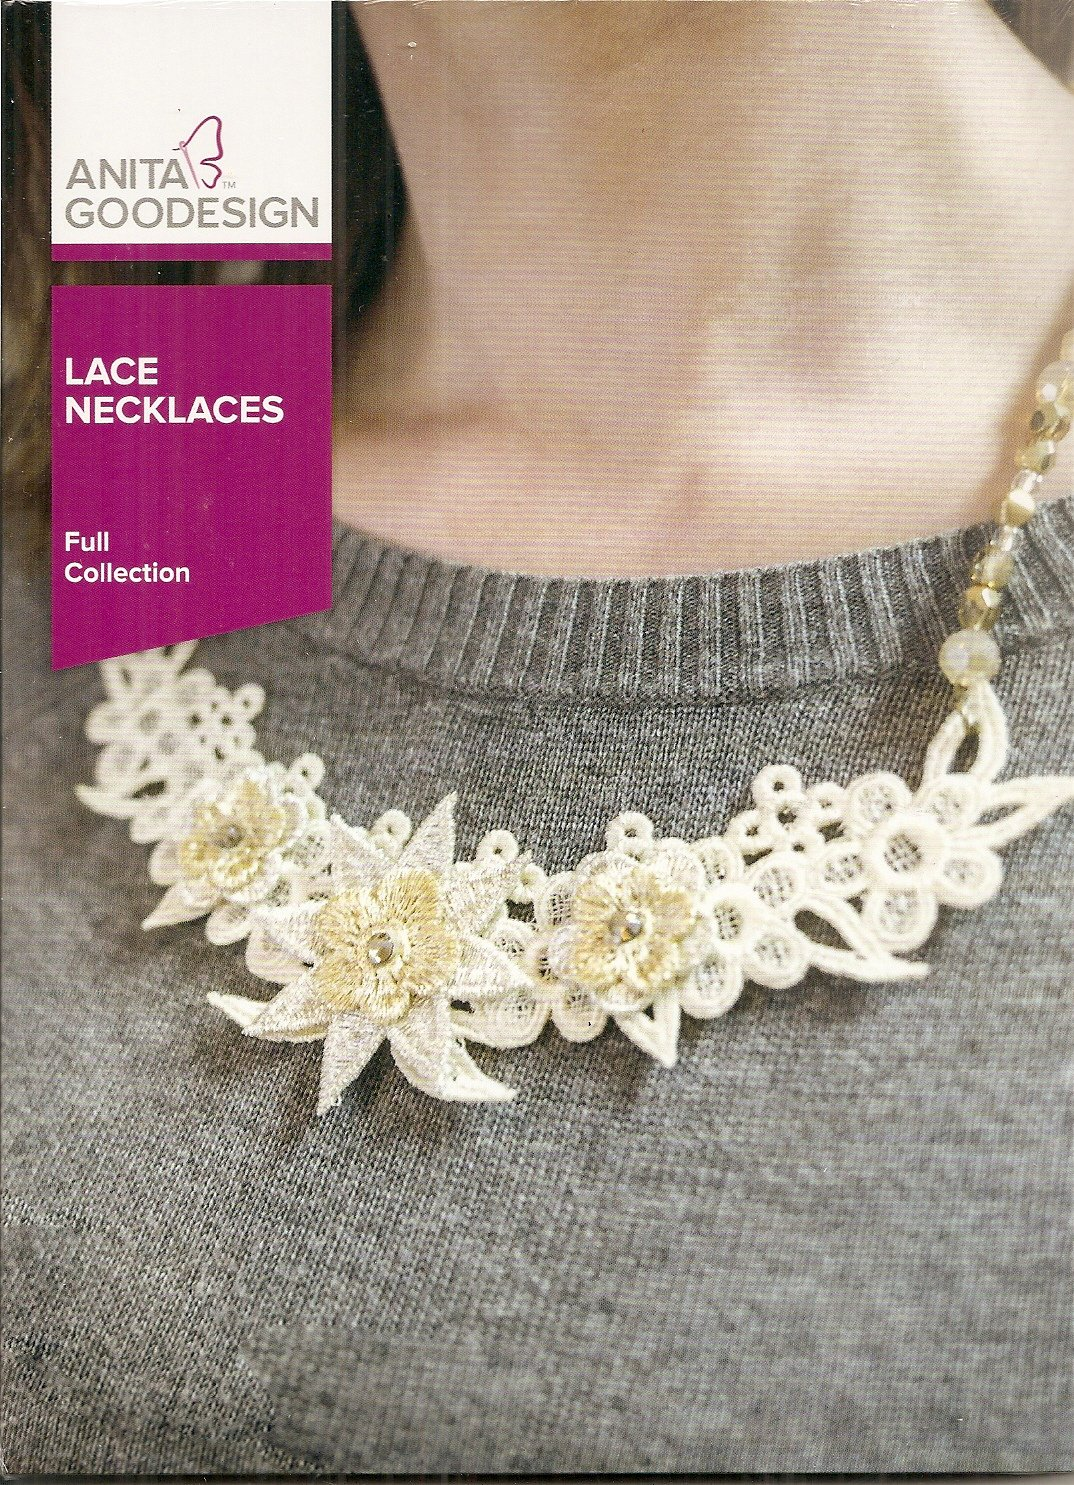 Anita Goodesign Full Collection Lace Necklaces